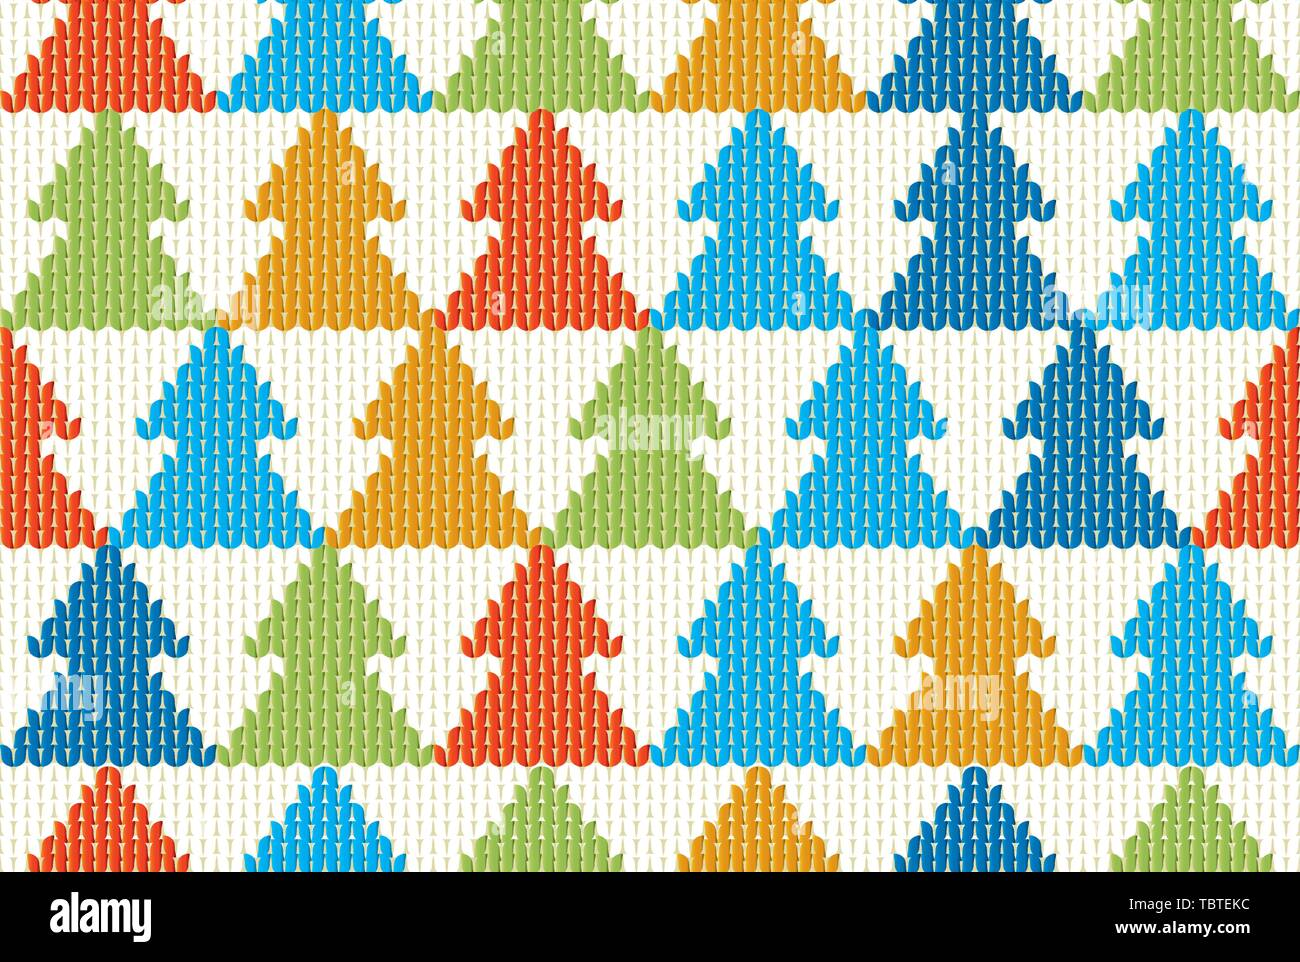 Vector illustration. Seamless textile Christmas background with tree pattern. - Stock Vector